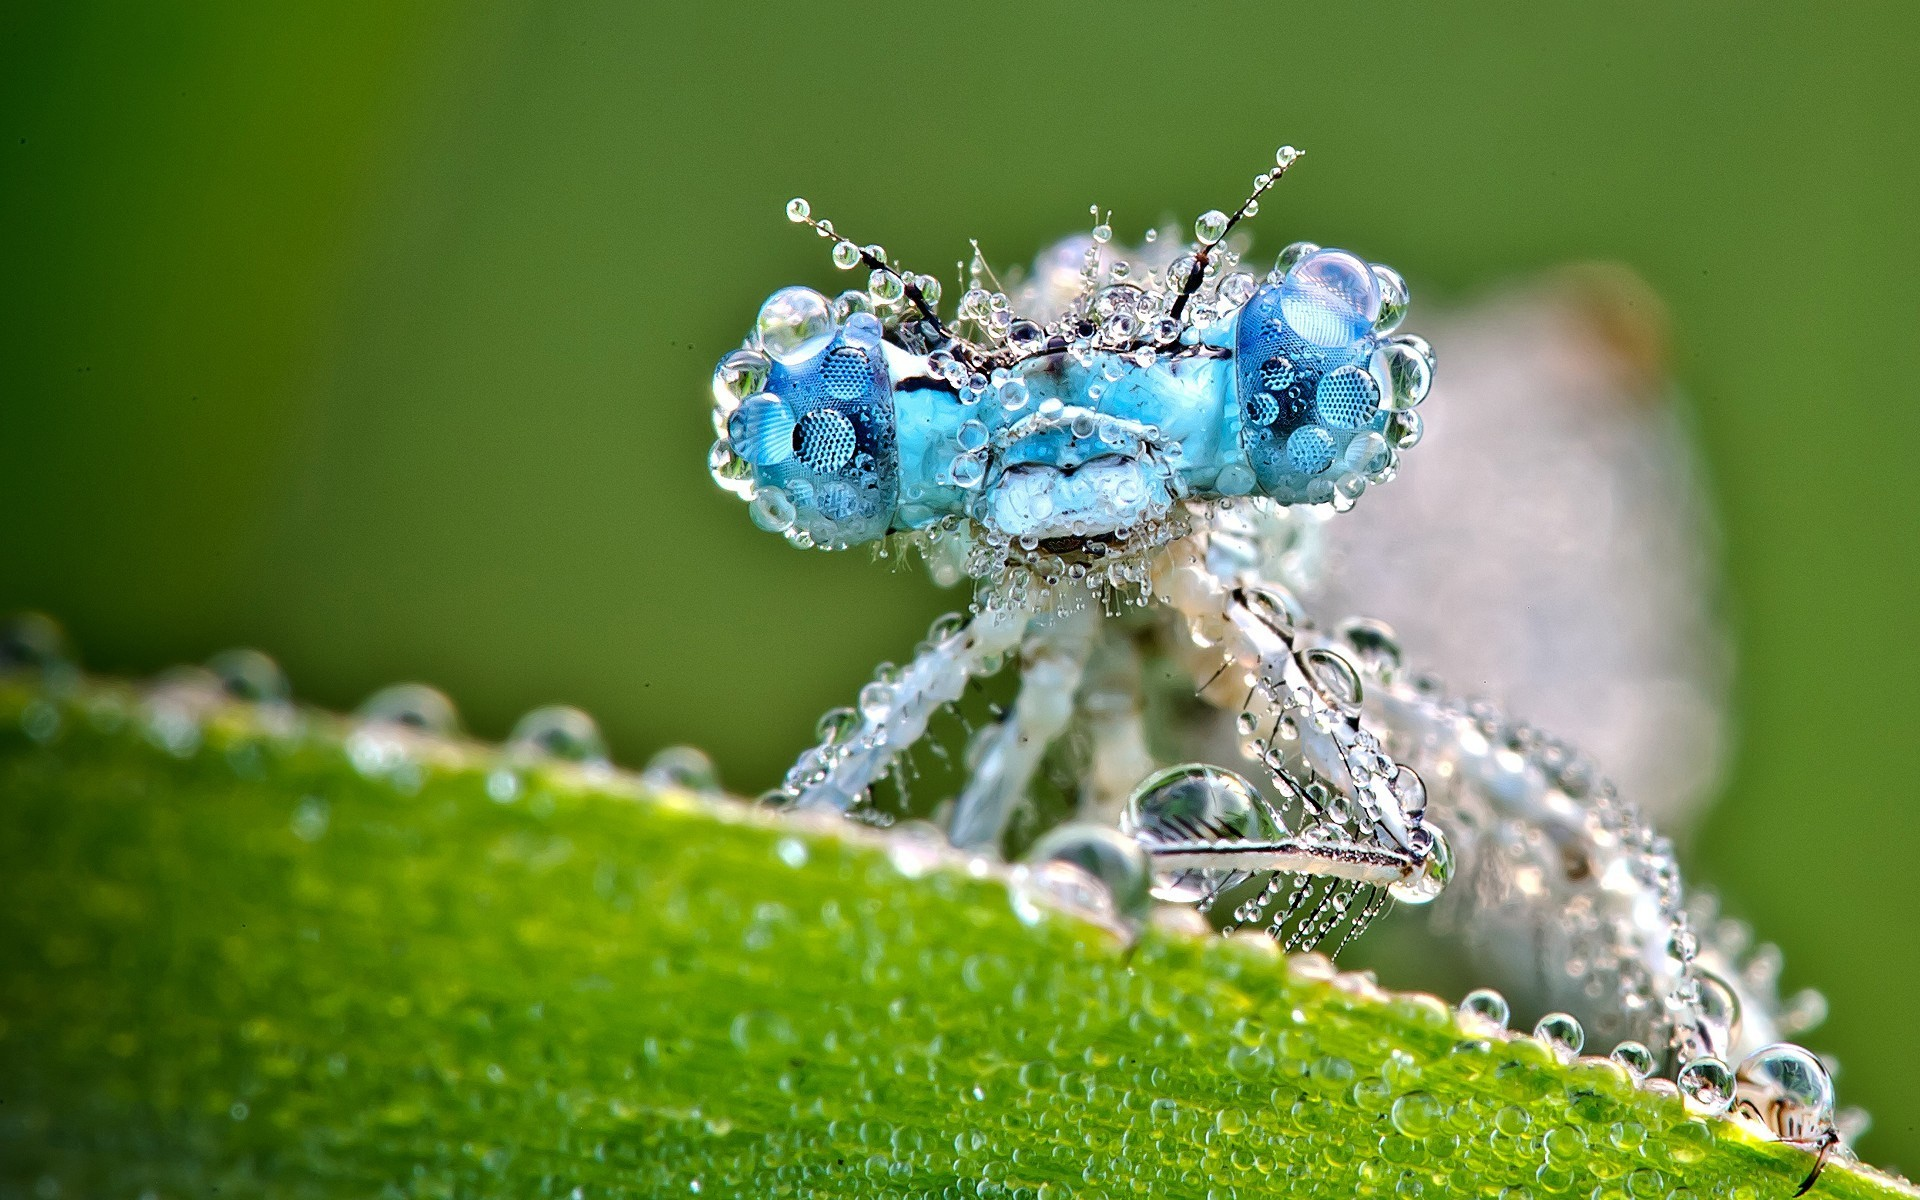 Stunning Dragonfly Water Drop Macro Photography Background HD